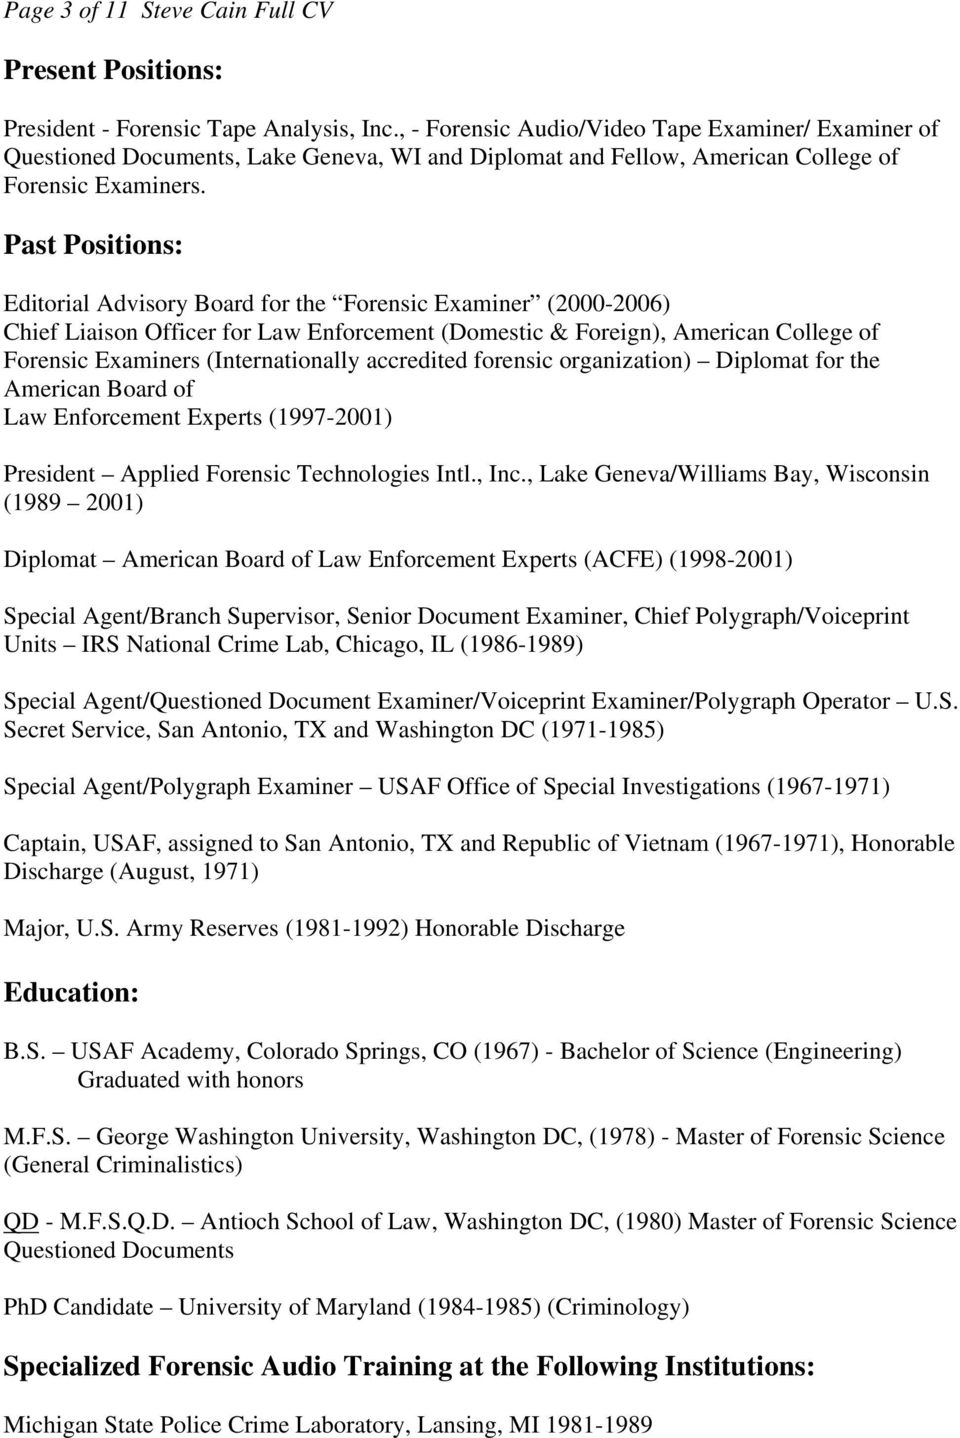 Past Positions: Editorial Advisory Board for the Forensic Examiner (2000-2006) Chief Liaison Officer for Law Enforcement (Domestic & Foreign), American College of Forensic Examiners (Internationally